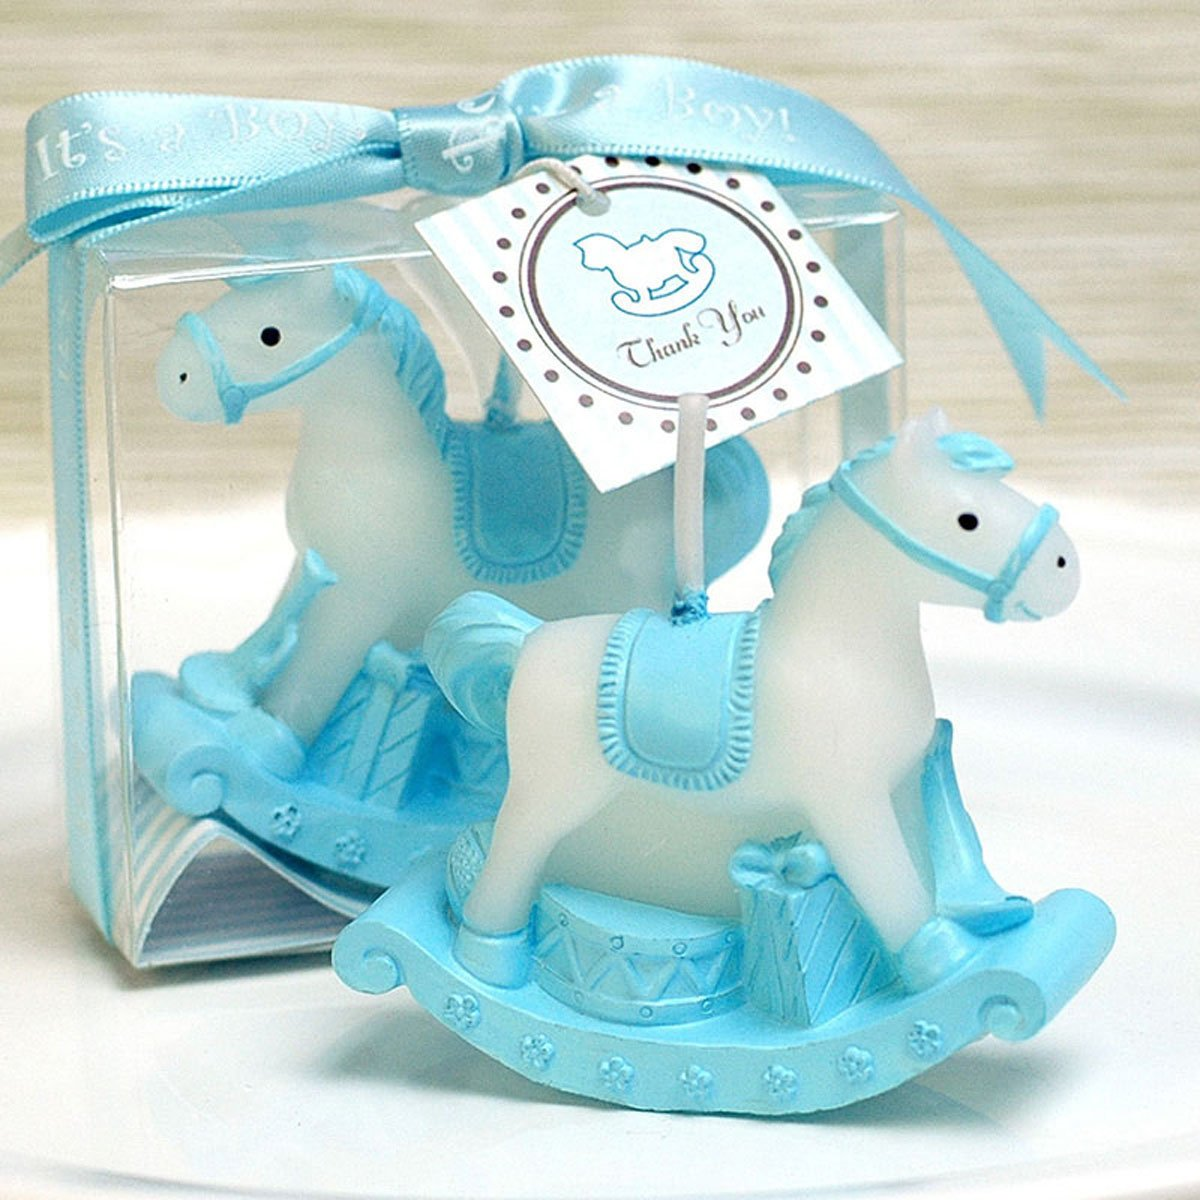 Cartoon Romantic Fantasy Carriage Charming Gifts Party Candles Smokeless Candles Birthday Candles for Baby Shower and Wedding Favor Keepsake Favor (10, Blue)